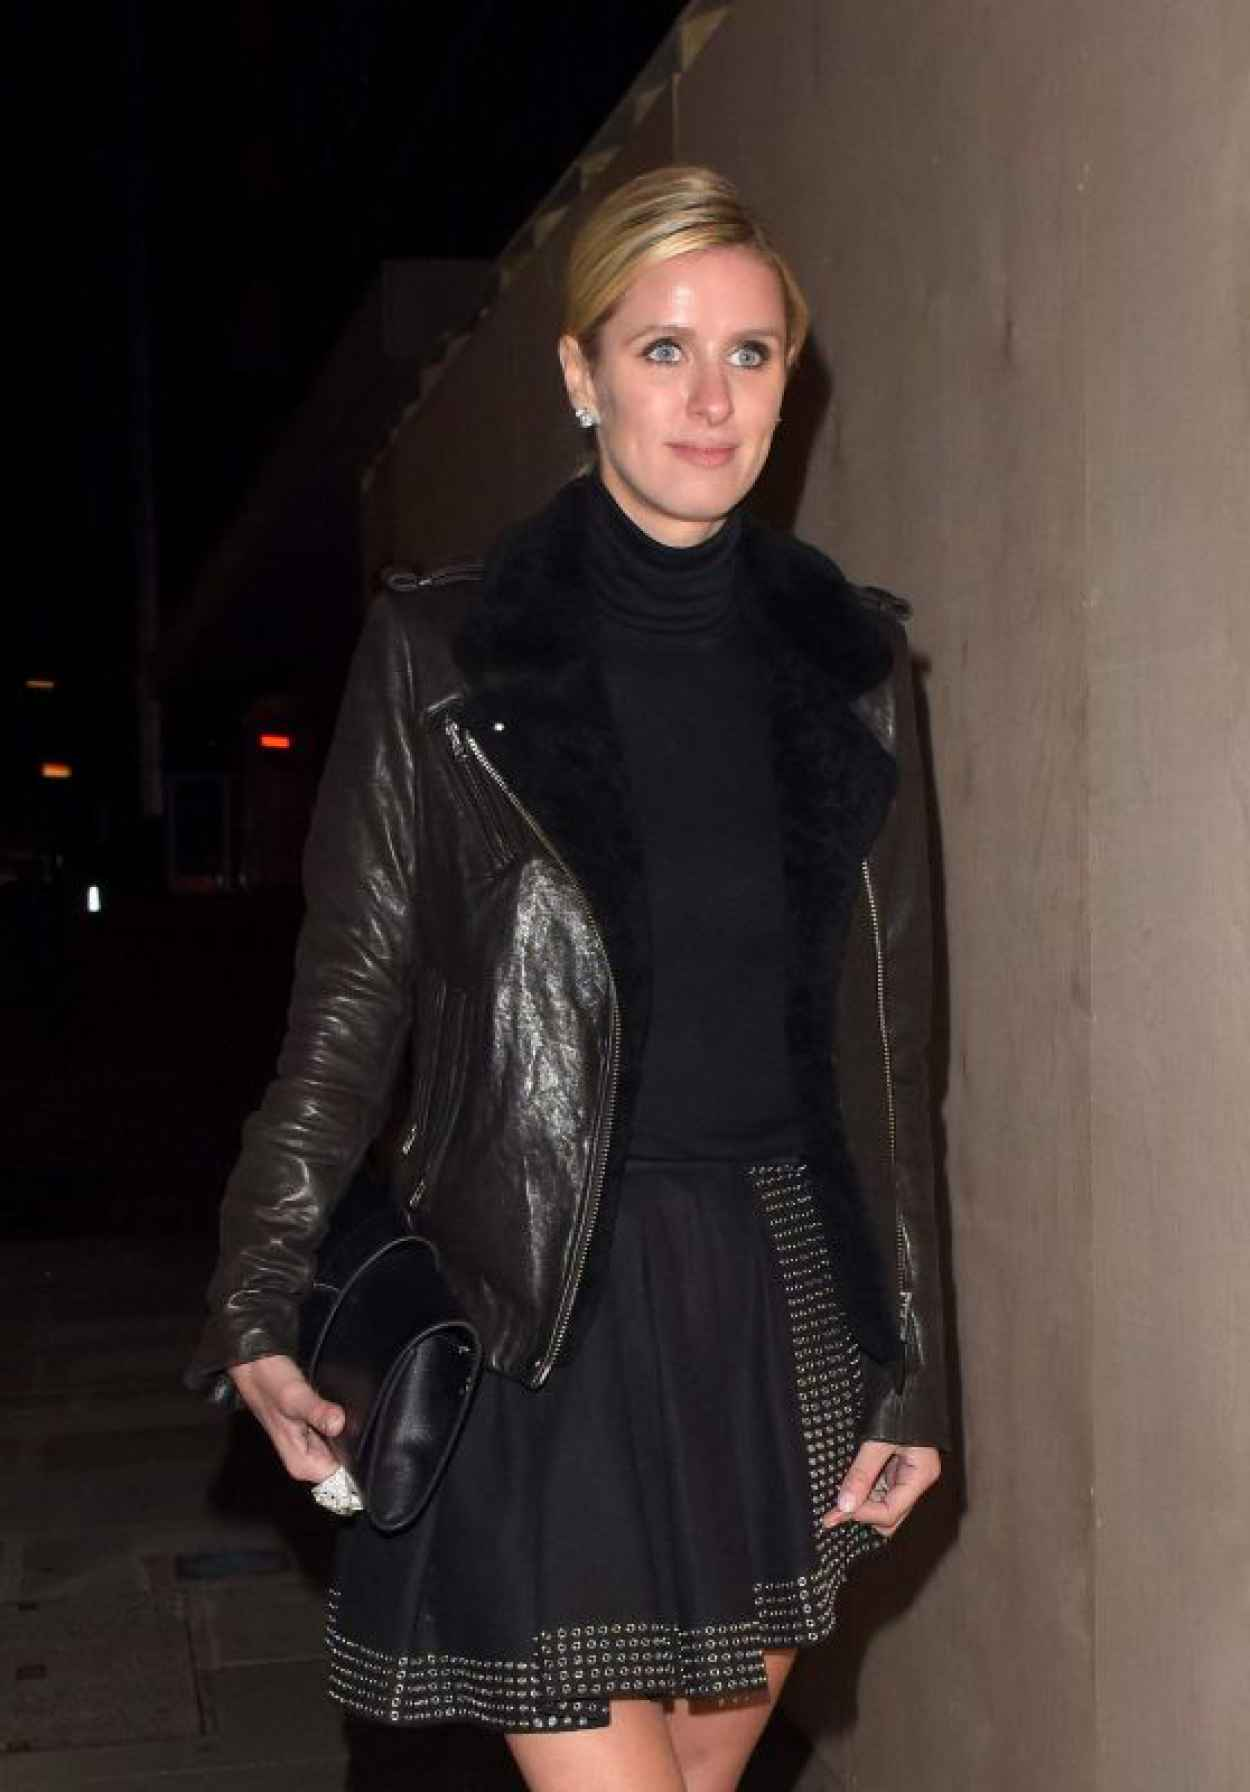 Nicky Hilton at the Chiltern Firehouse in London - Harpers Bazaar Party, October 2015-1